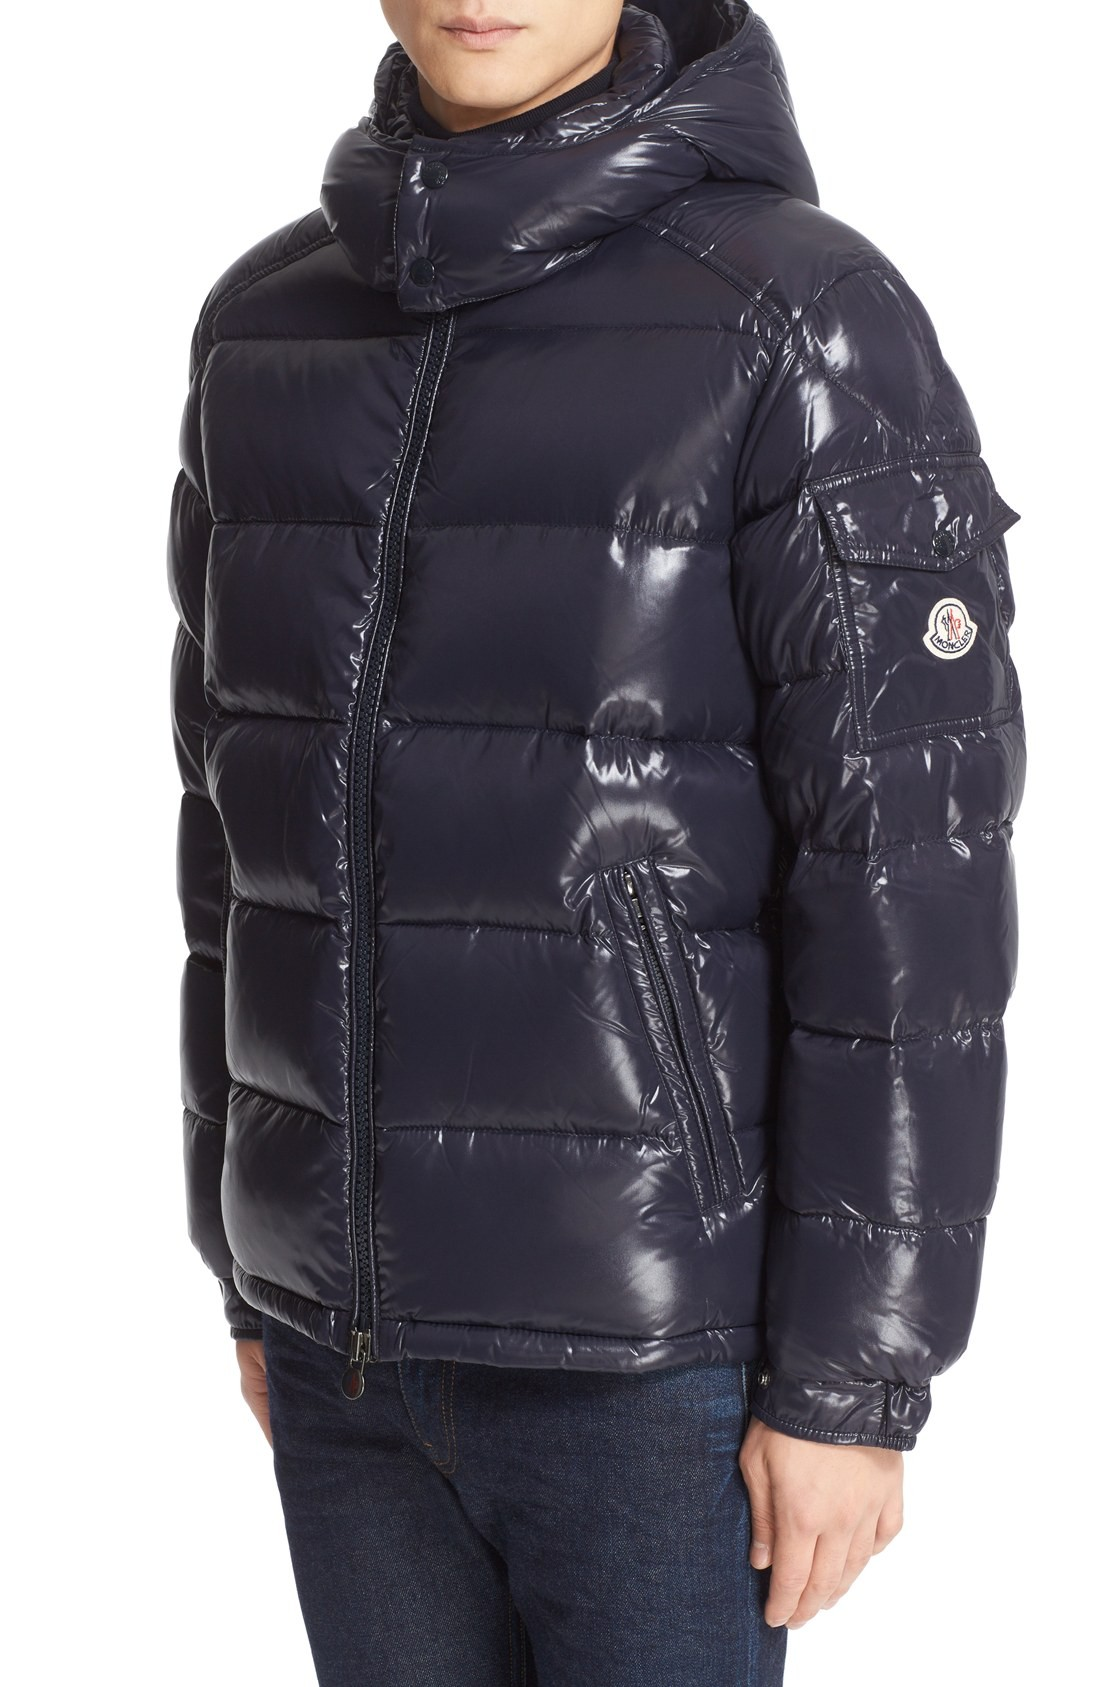 Astonishing Balmain Leather Jacket Men | Stunning Moncler Maya